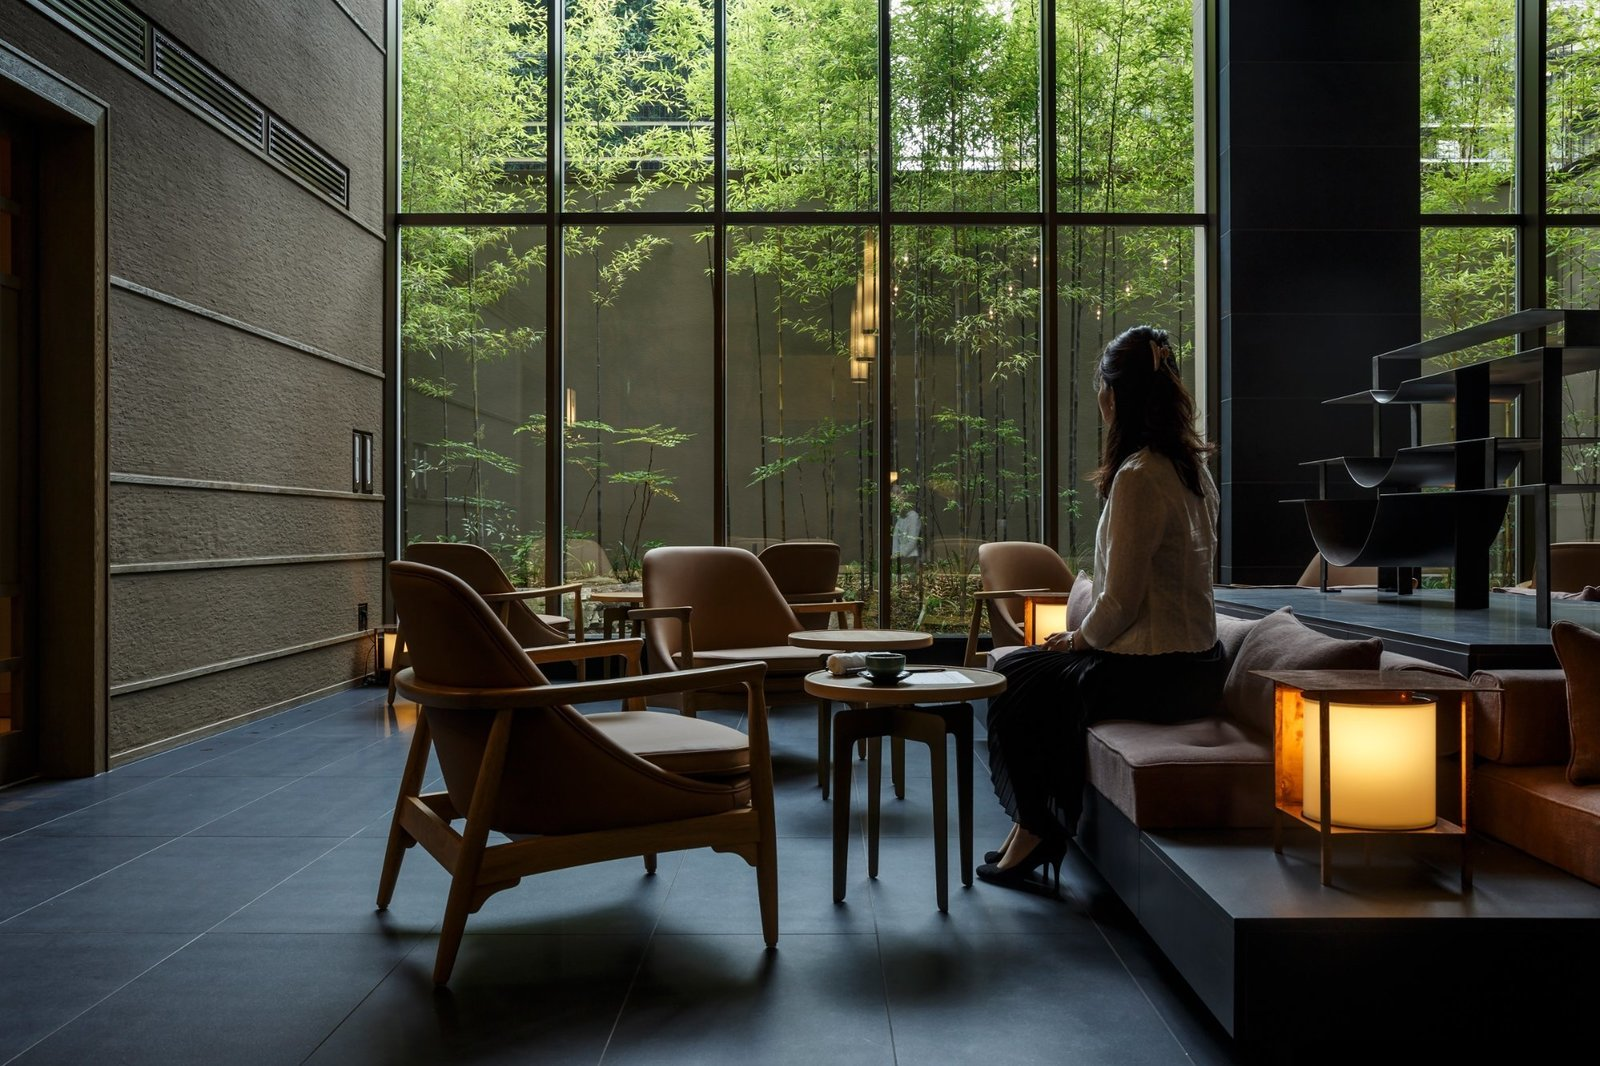 Living Room, Coffee Tables, Chair, Bench, and Table Lighting  Hotel The Celestine Kyoto Gion